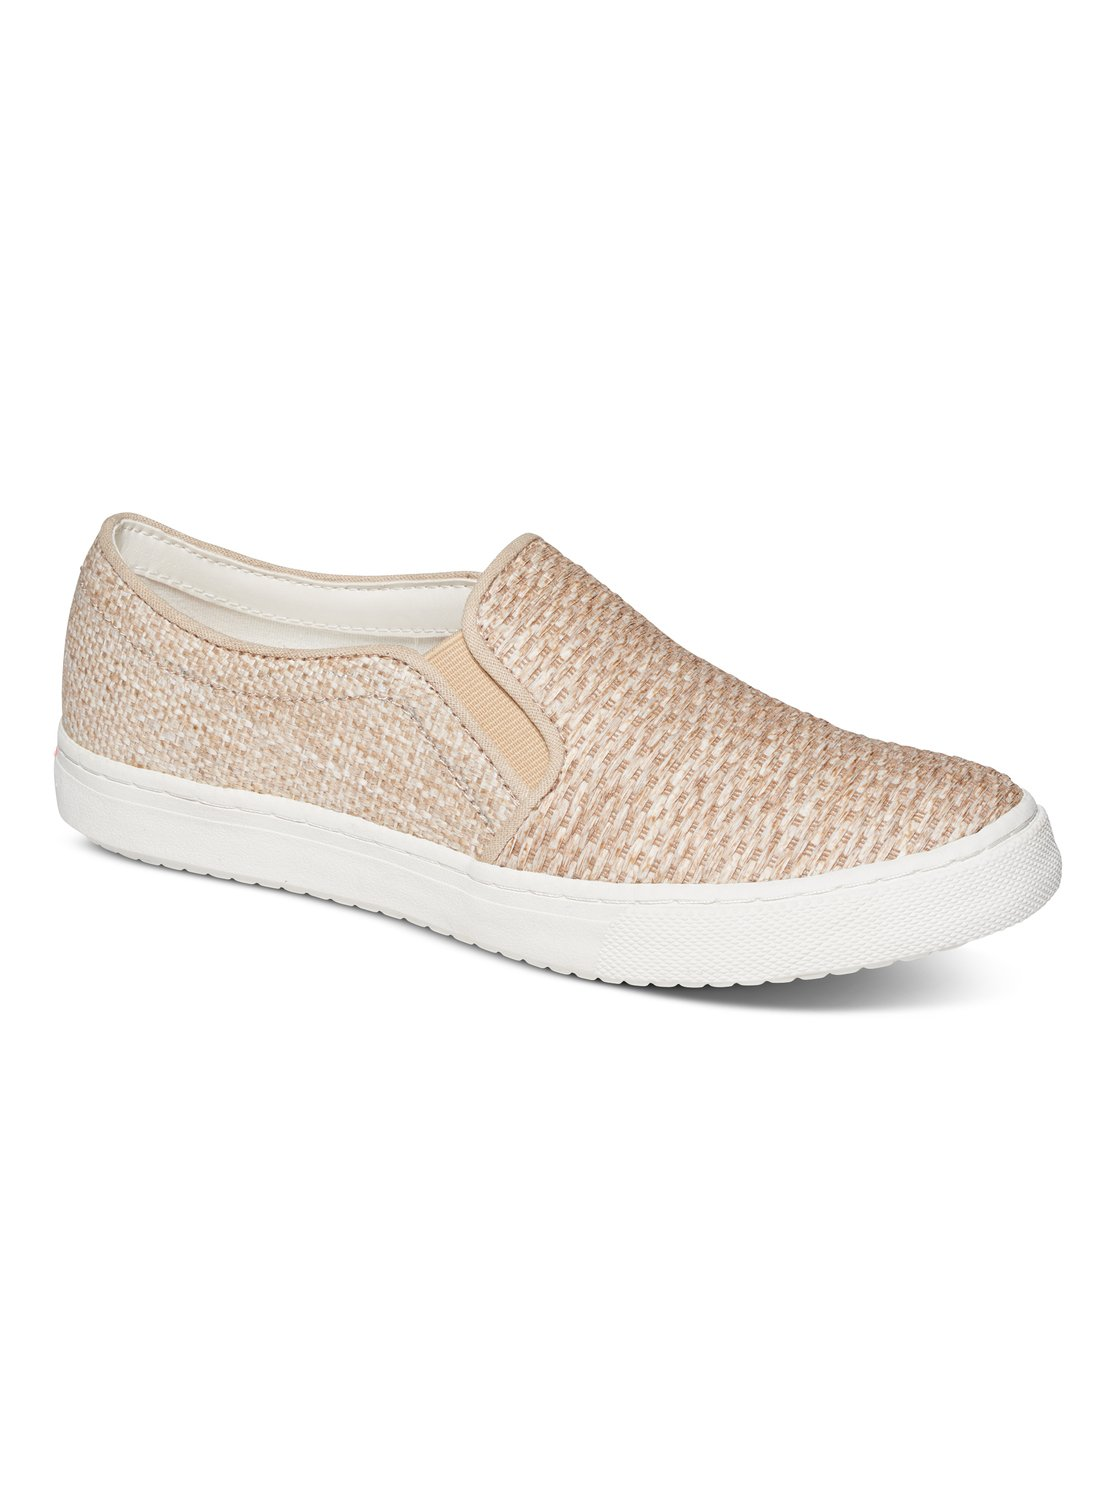 Blake - Slip-On Shoes от Roxy RU